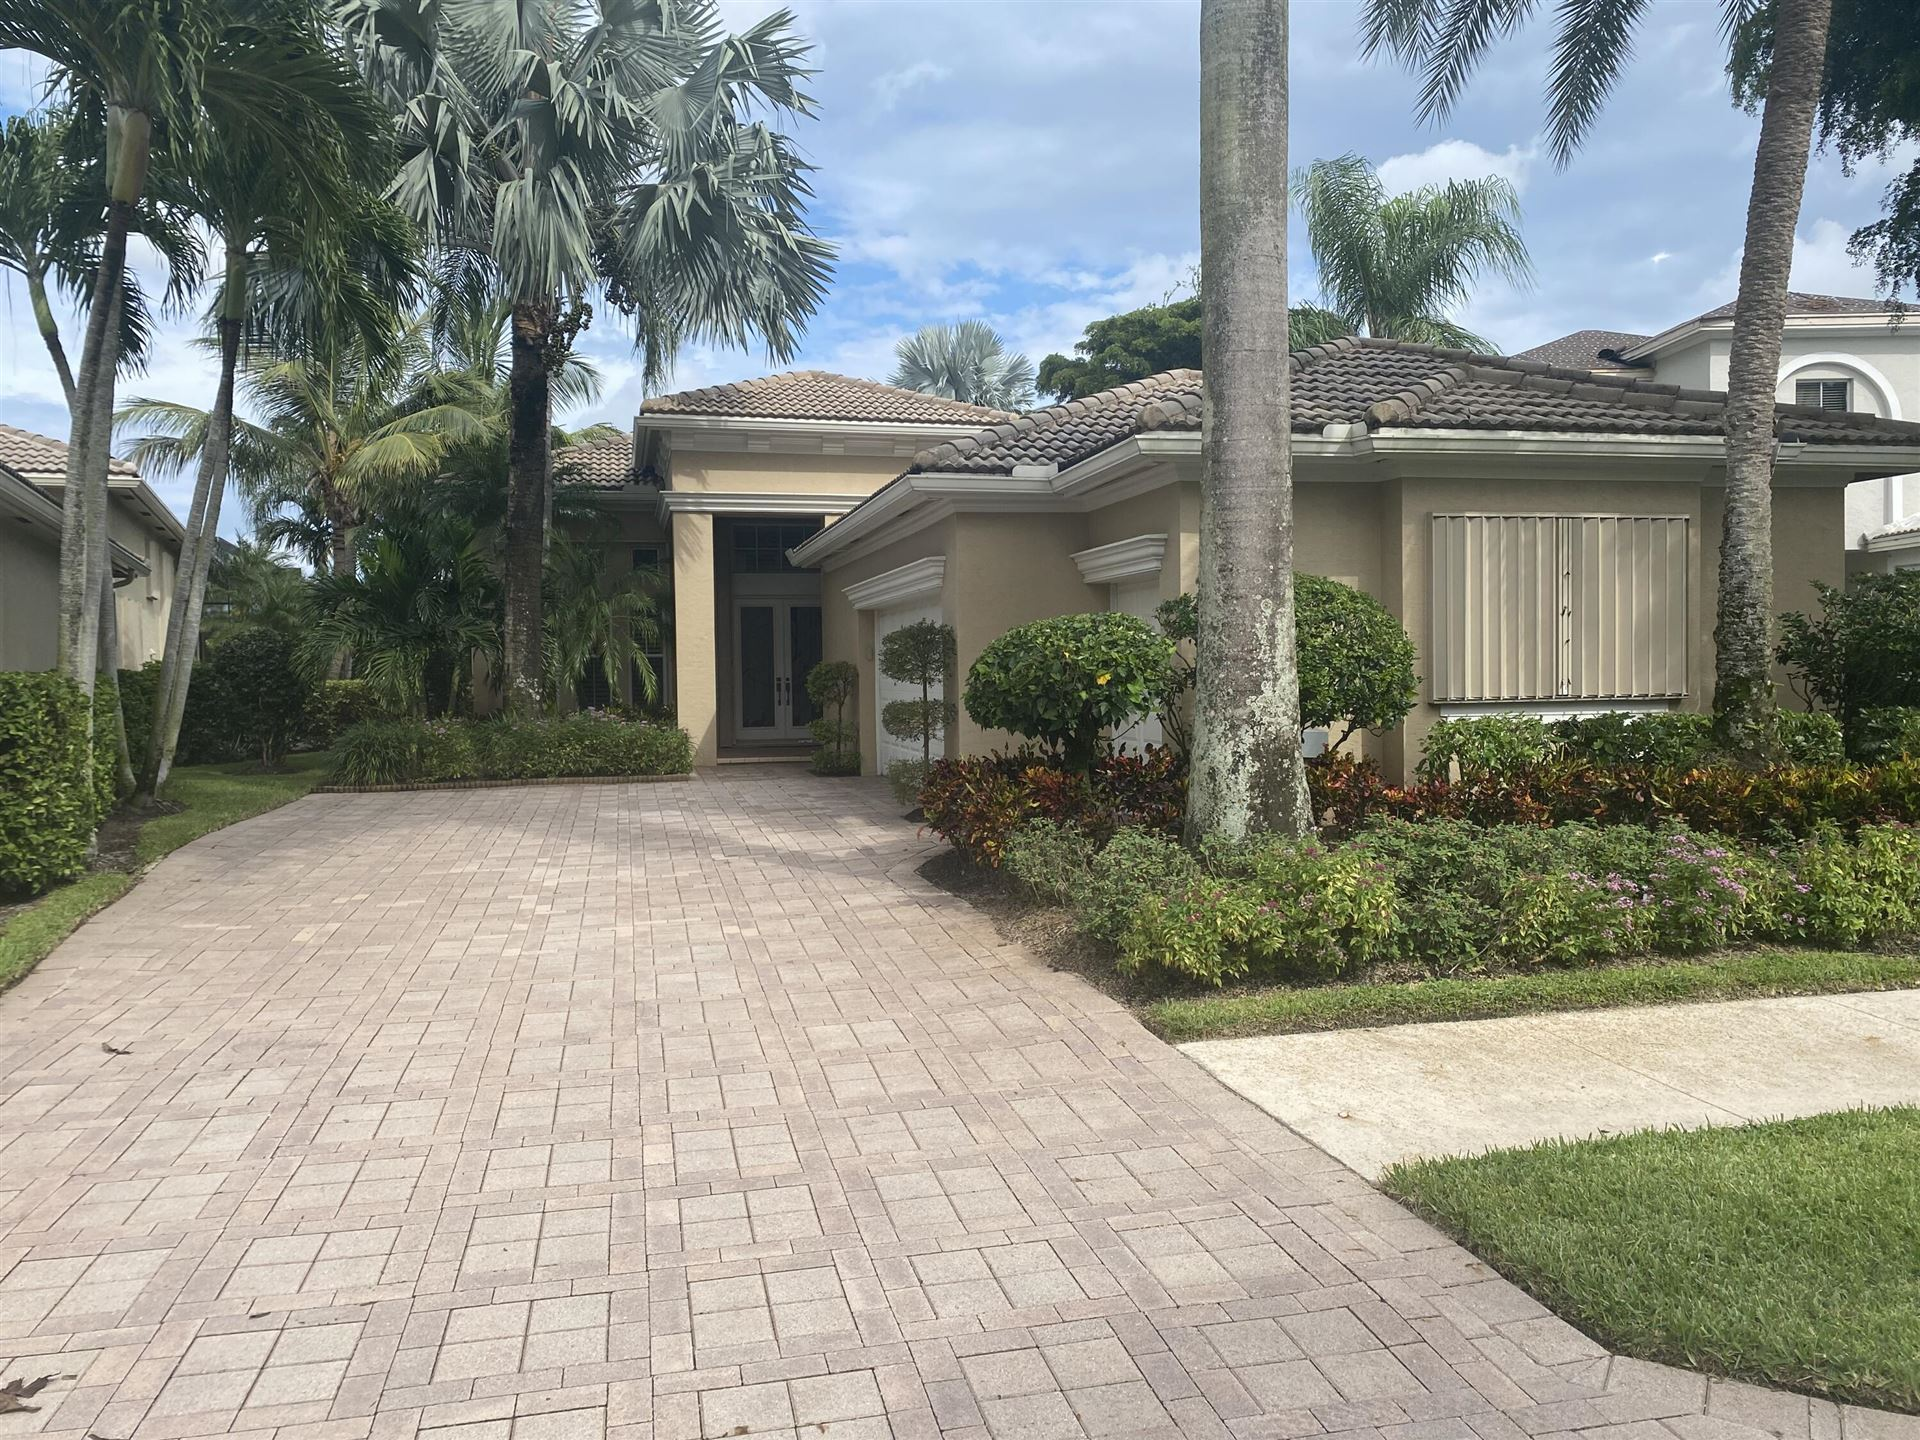 Photo of 163 Orchid Cay Drive, Palm Beach Gardens, FL 33418 (MLS # RX-10747939)